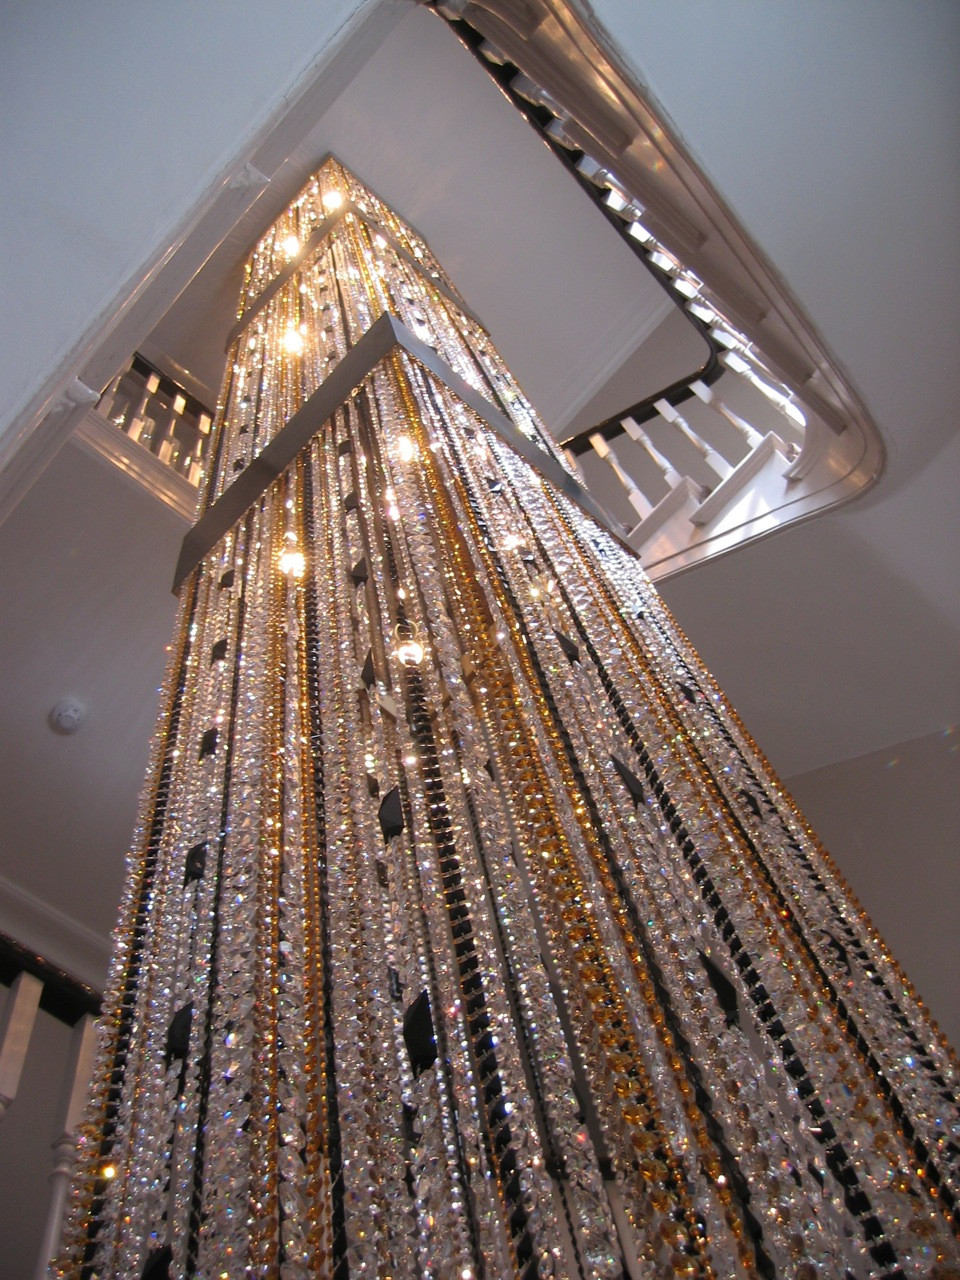 STAIRWELL CRYSTAL LIGHT SCULPTURE IN AMBER AND JET CRYSTAL